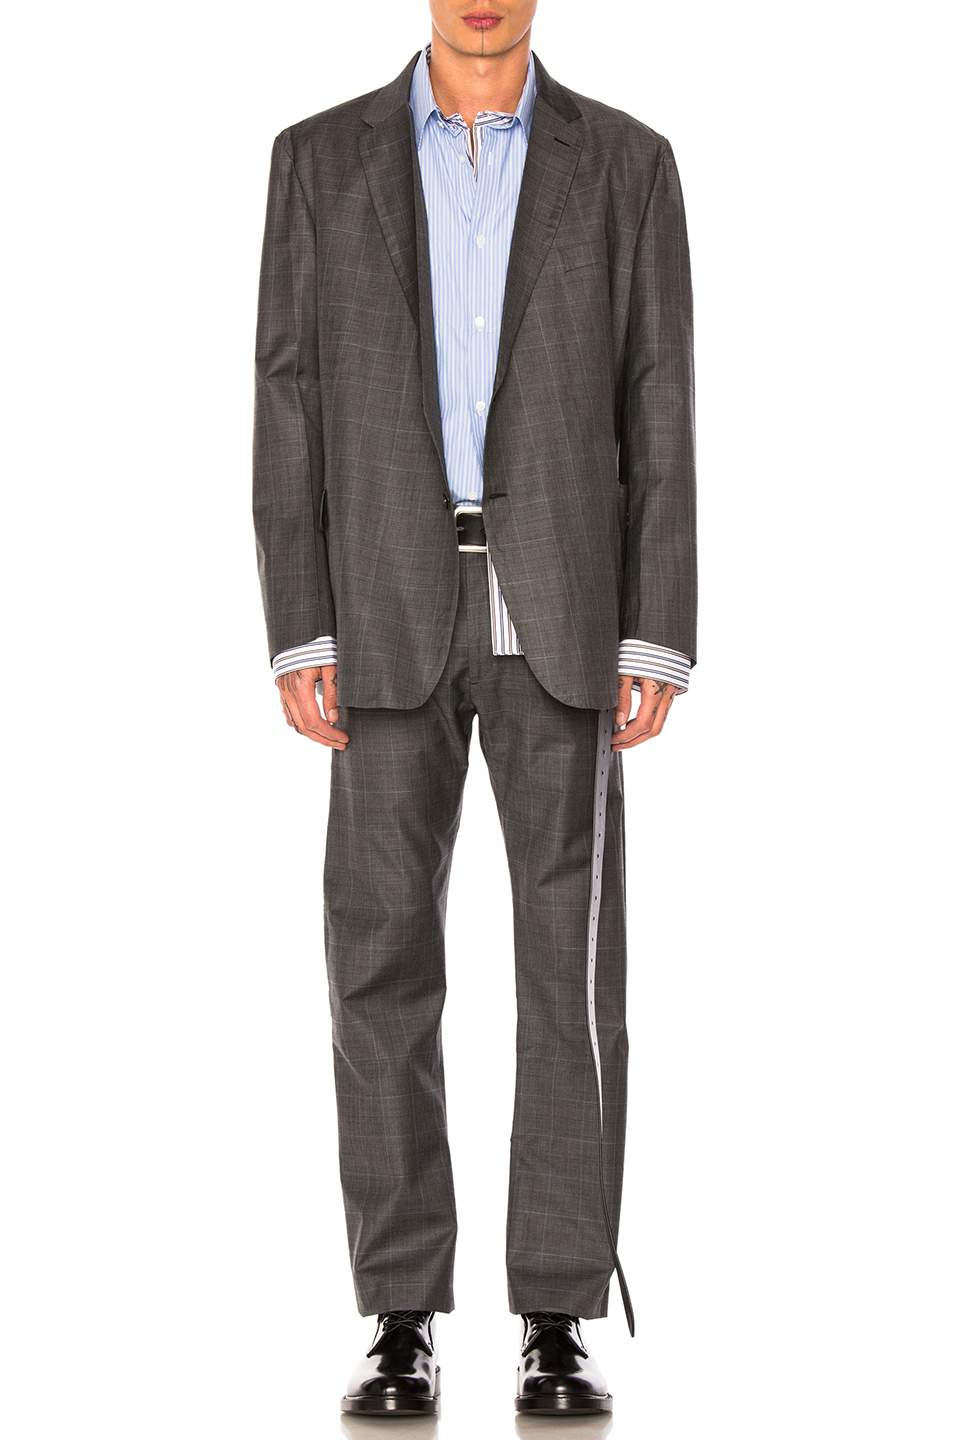 VETEMENTS x Brioni Single Breasted Jacket in Gray,Checkered & Plaid